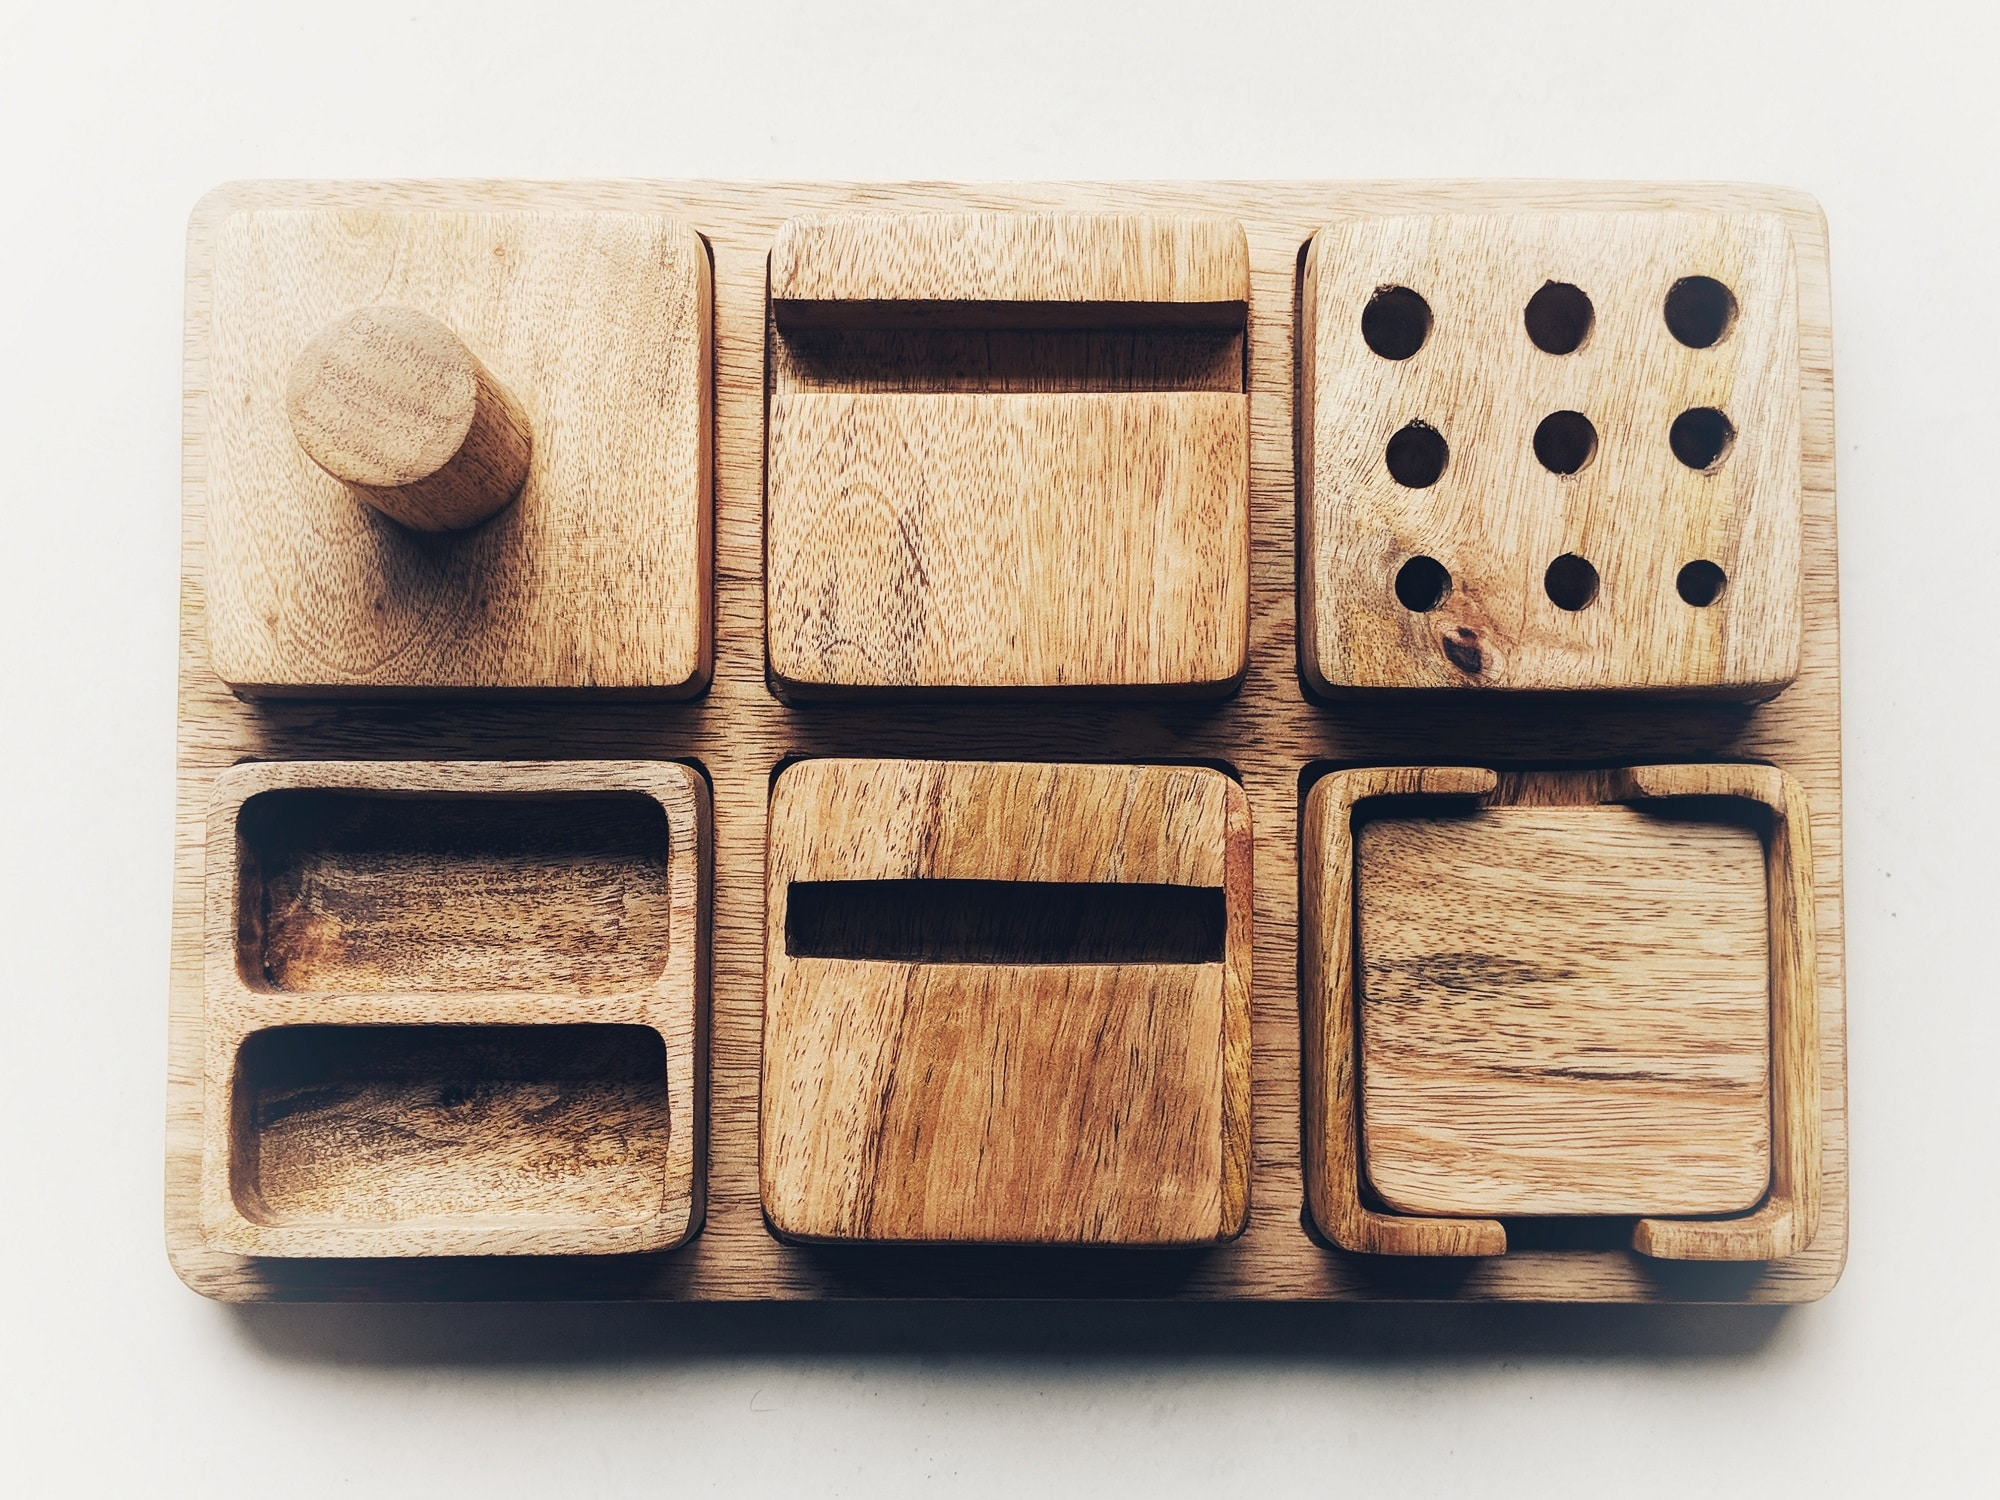 Functional in 6 ways, Daraj is made from reused and partly reclaimed wood.